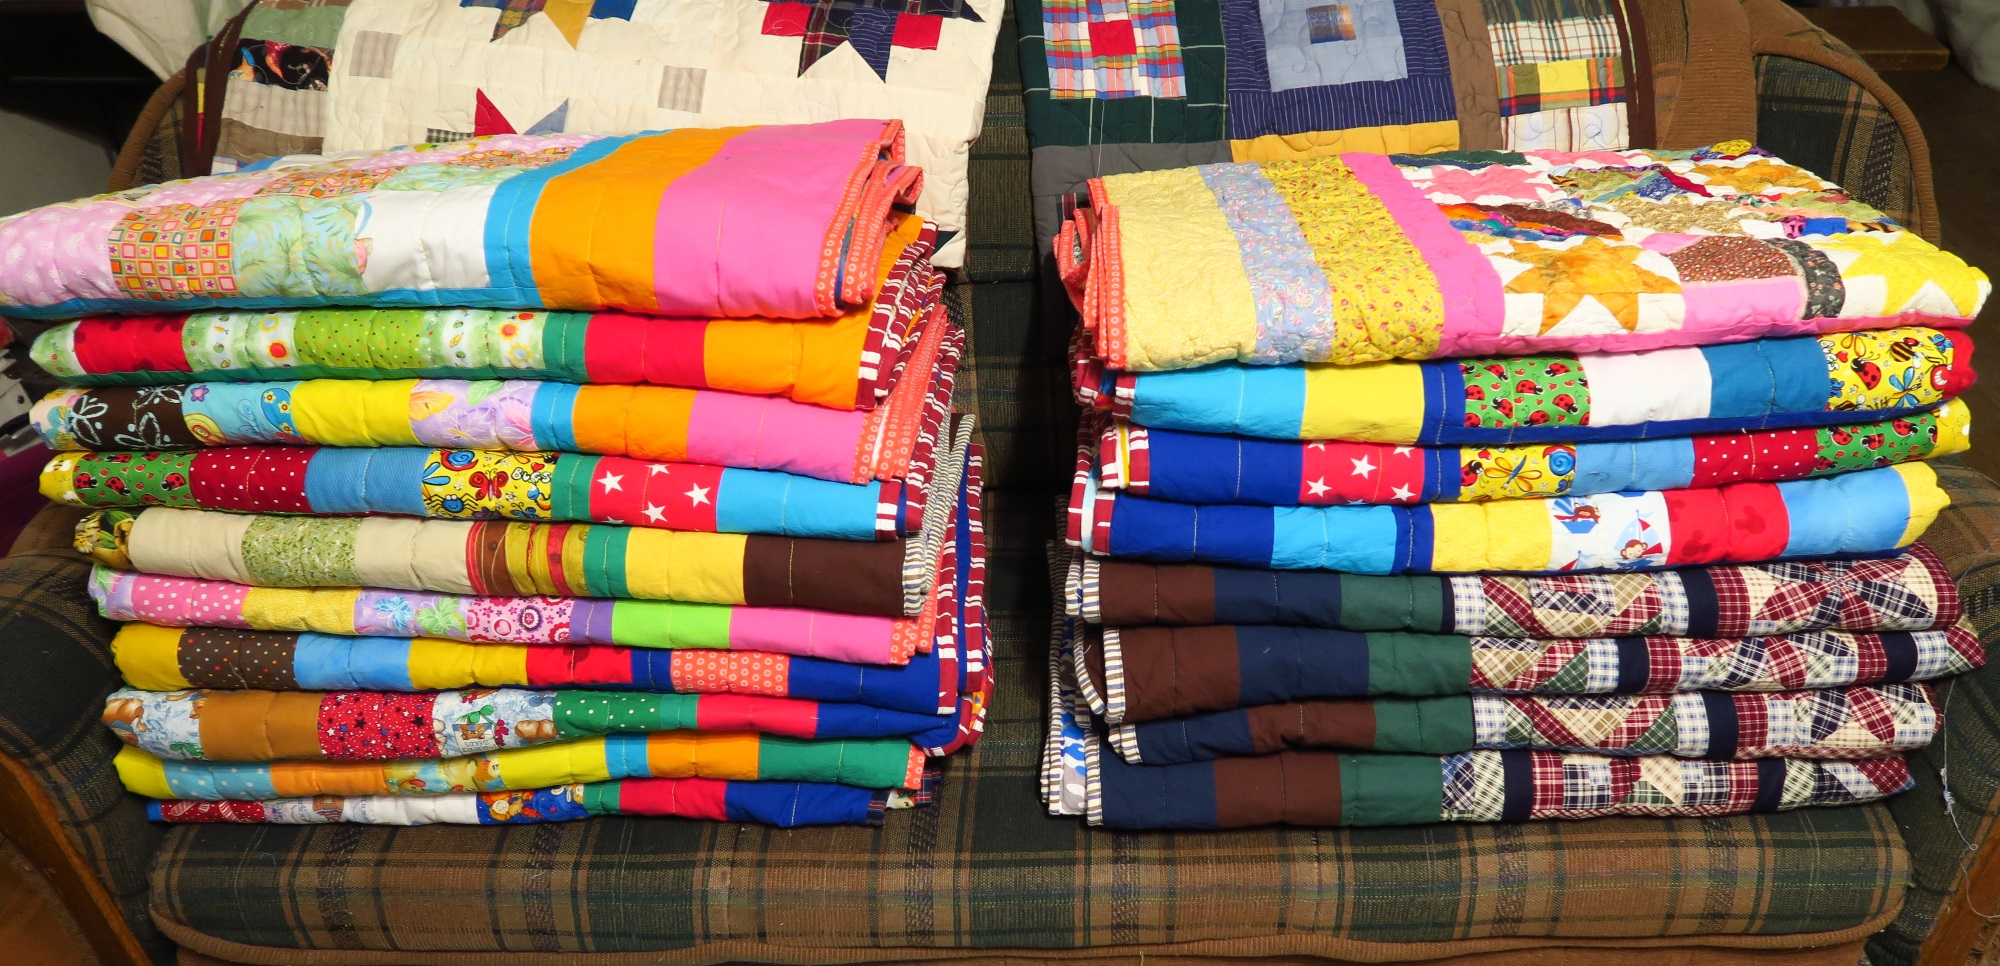 These are the quilts ready for pictures. They have been washed and let dry. Now I need above freezing weather so I can take them outside and get individual pictures.